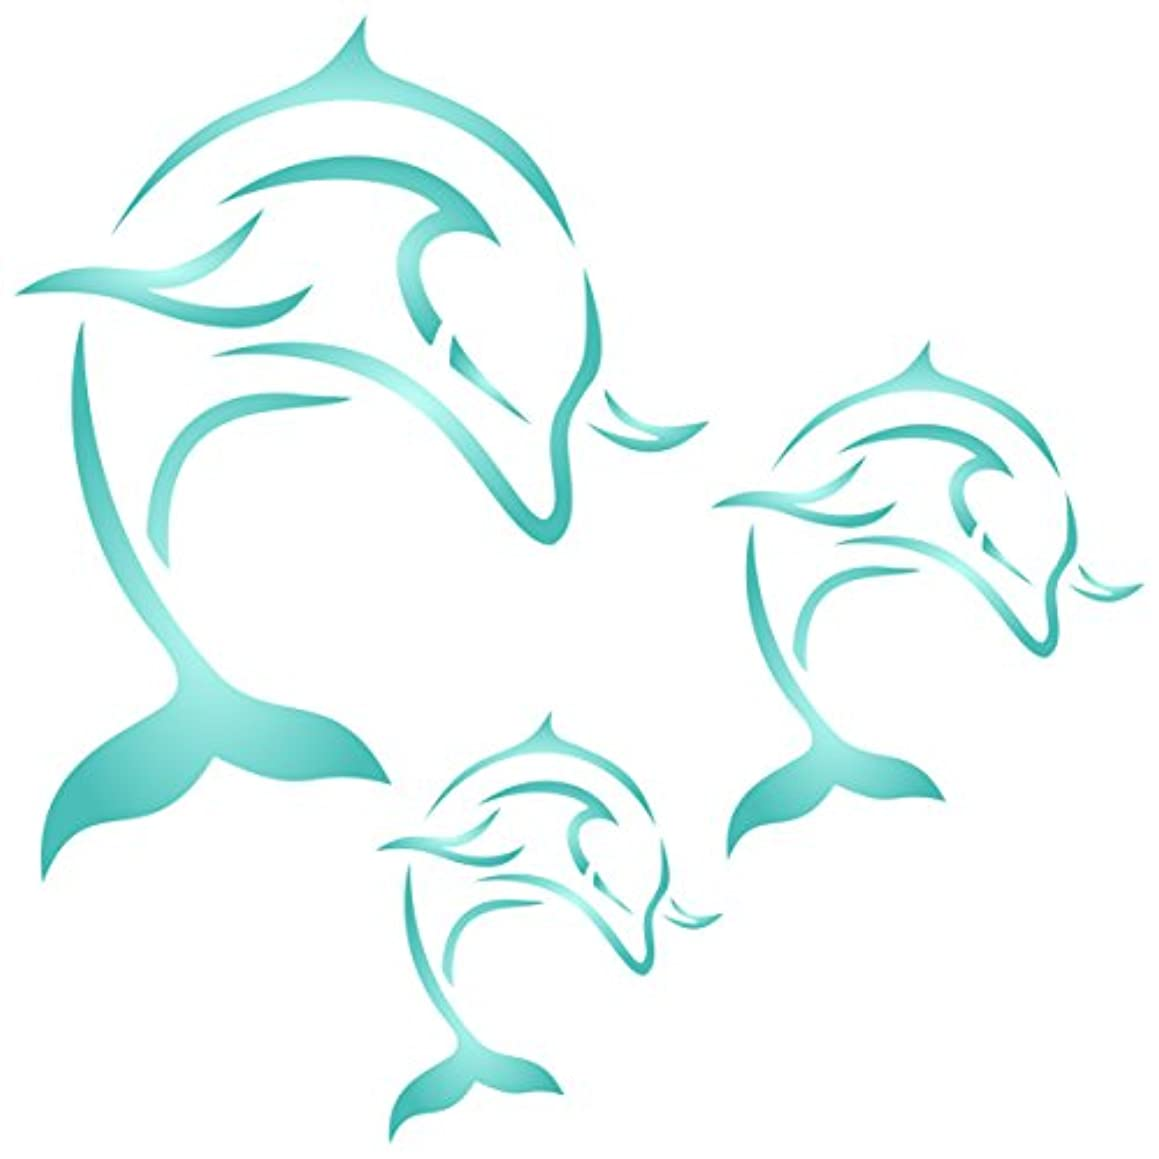 """Dolphin Mural Stencil - (size 10.5""""w x 10.5""""h) Reusable Wall Stencils for Painting - Best Quality Decor Ideas - Use on Walls, Floors, Fabrics, Glass, Wood, and More…"""